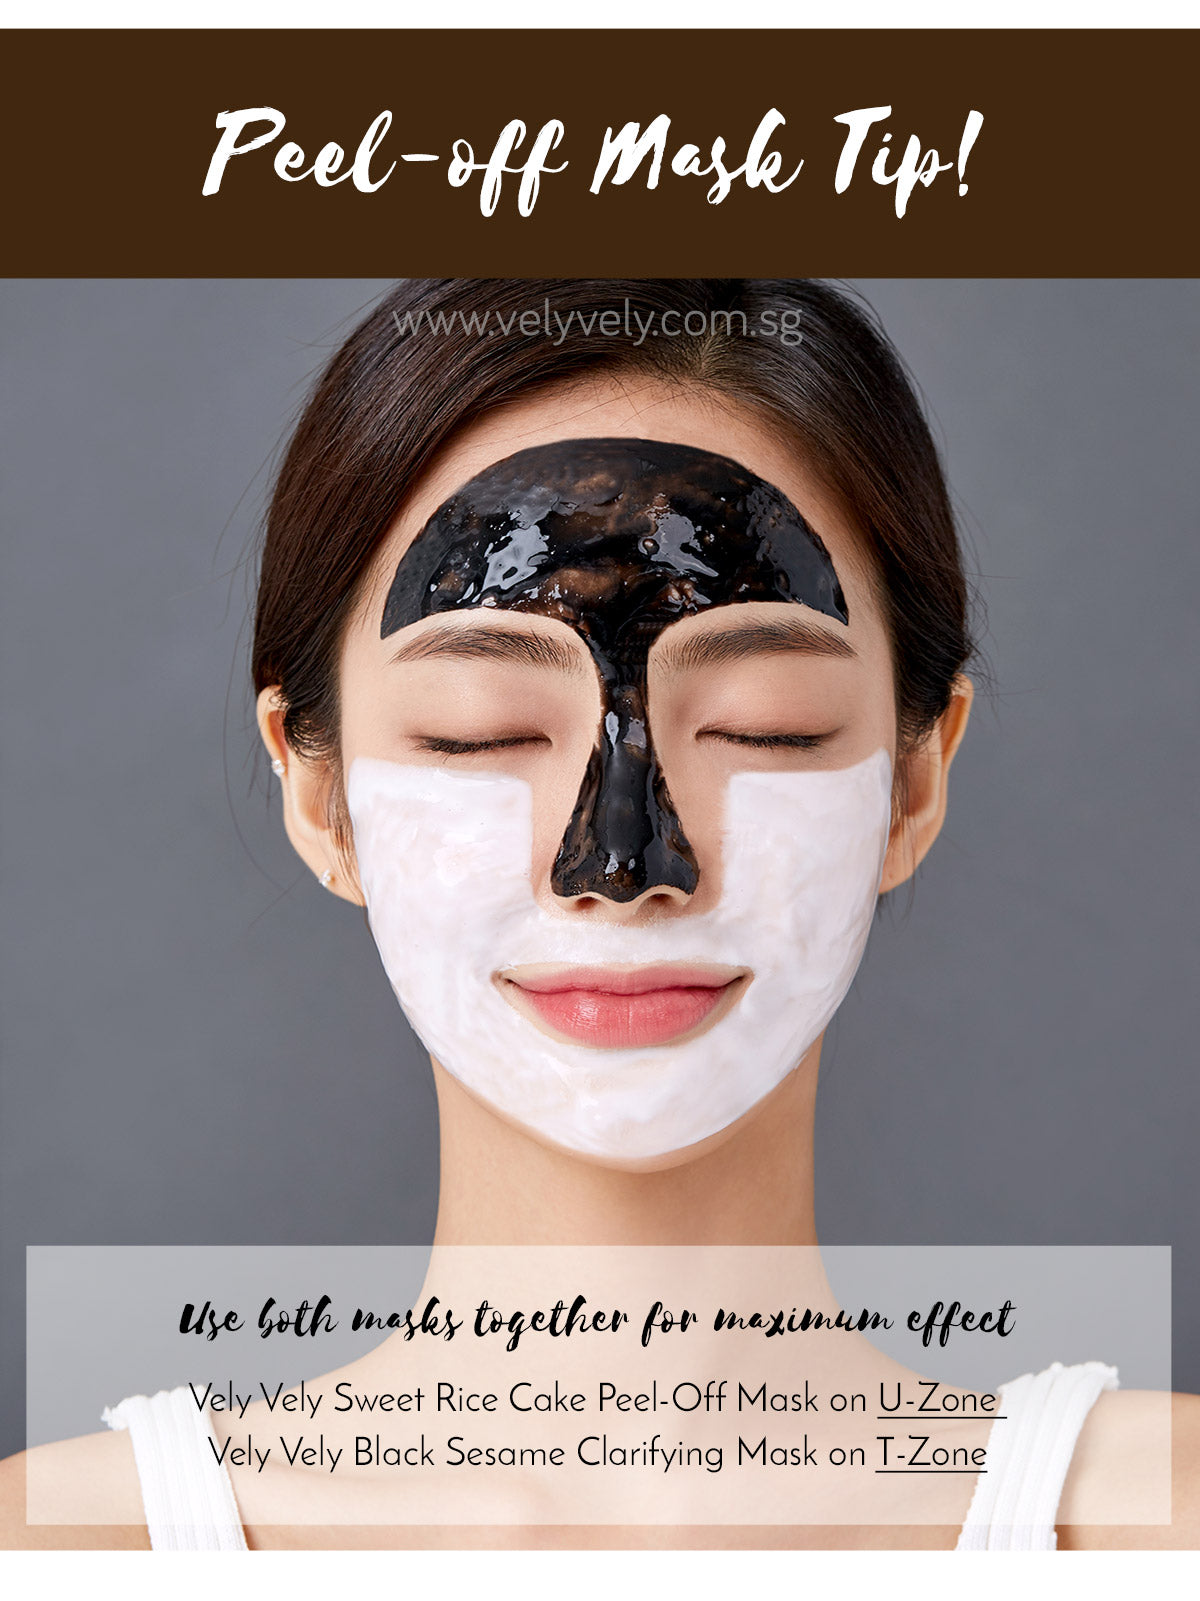 Vely Vely Black Sesame Clarifying Mask Tip! Use it together with Vely Vely Sweet Rice Cake Peel-Off Mask.